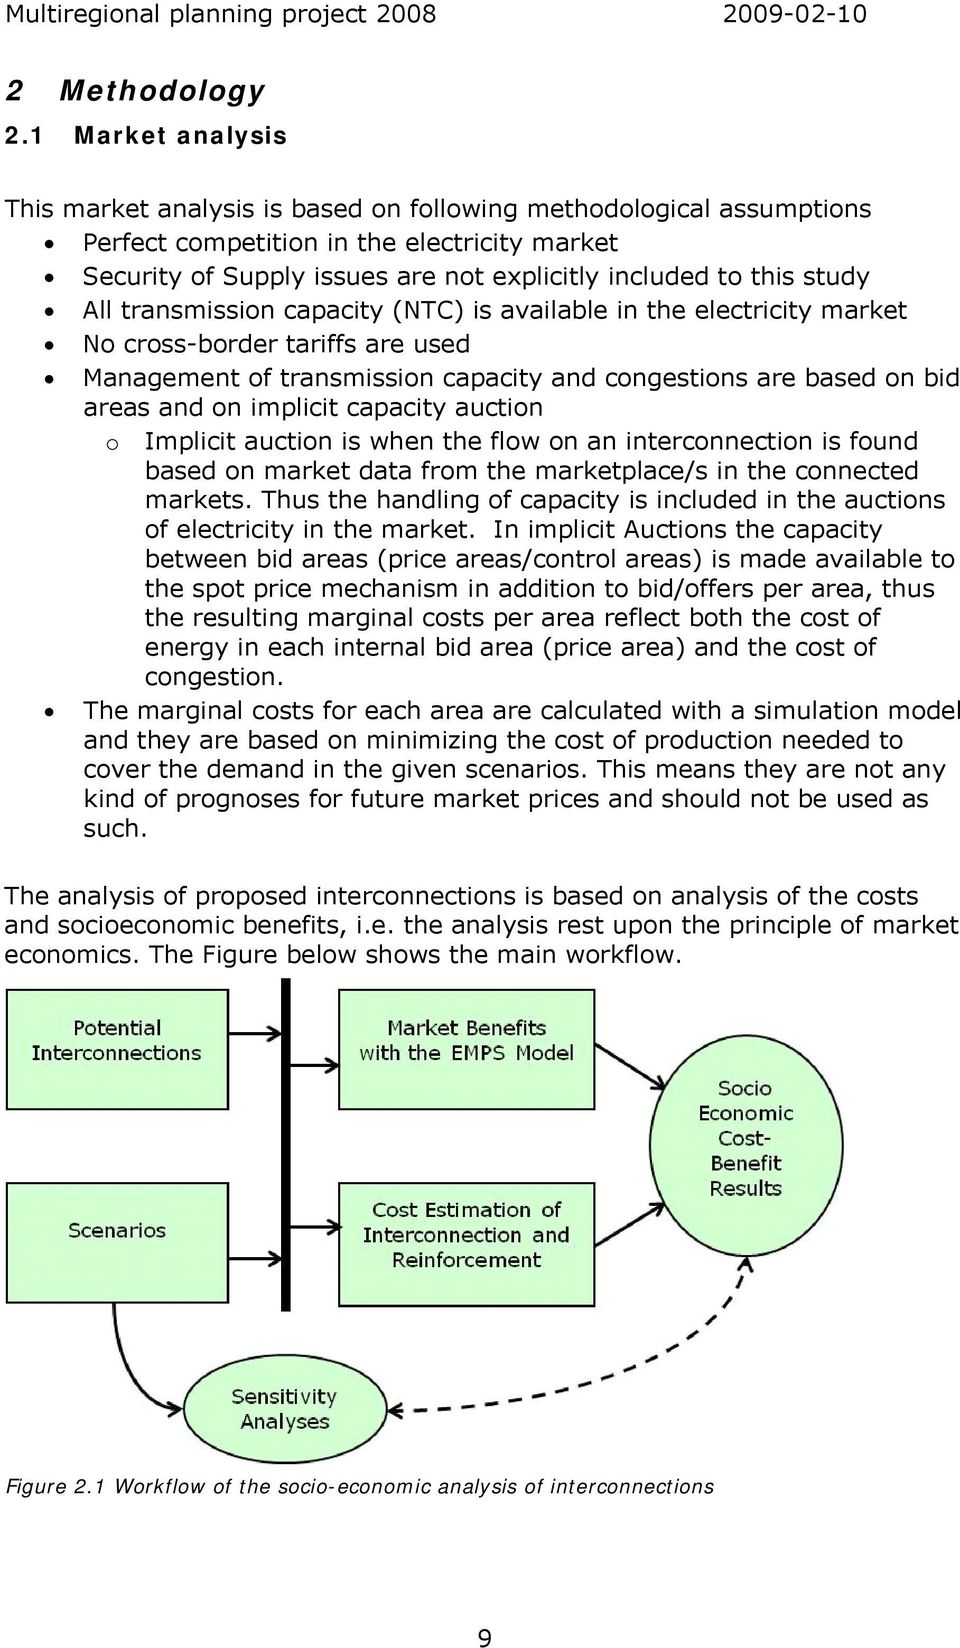 study All transmission capacity (NTC) is available in the electricity market No cross-border tariffs are used Management of transmission capacity and congestions are based on bid areas and on